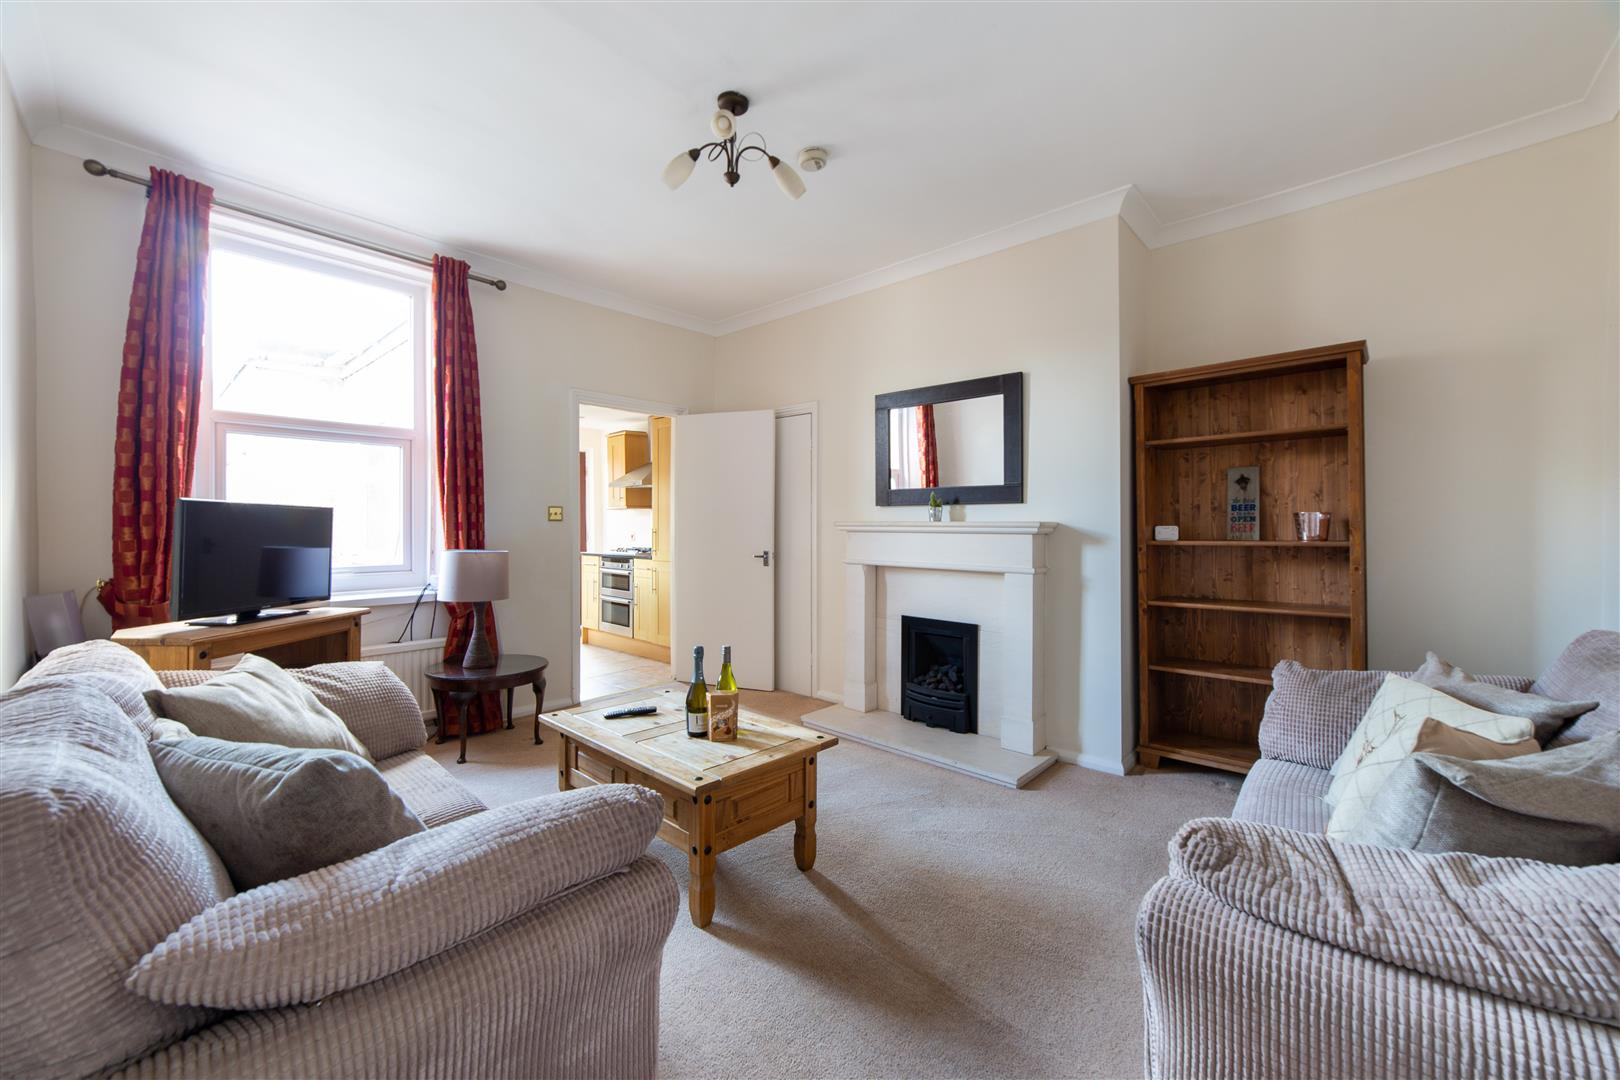 3 bed flat to rent in Mowbray Street, Newcastle Upon Tyne, NE6